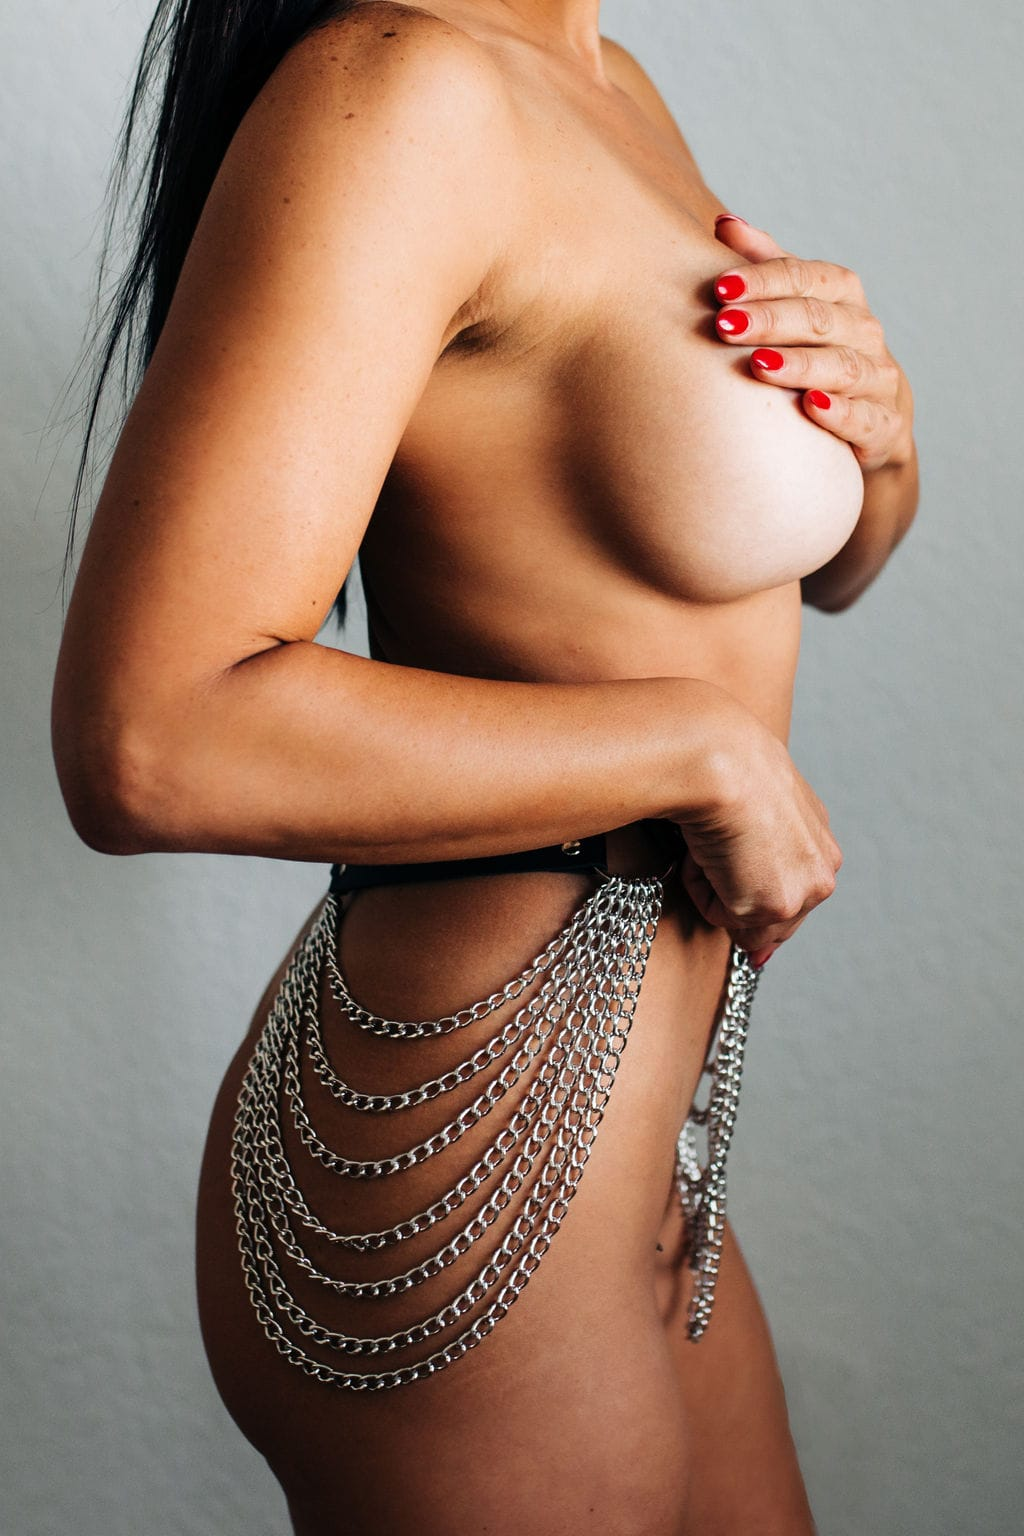 girl with body chain and red nails